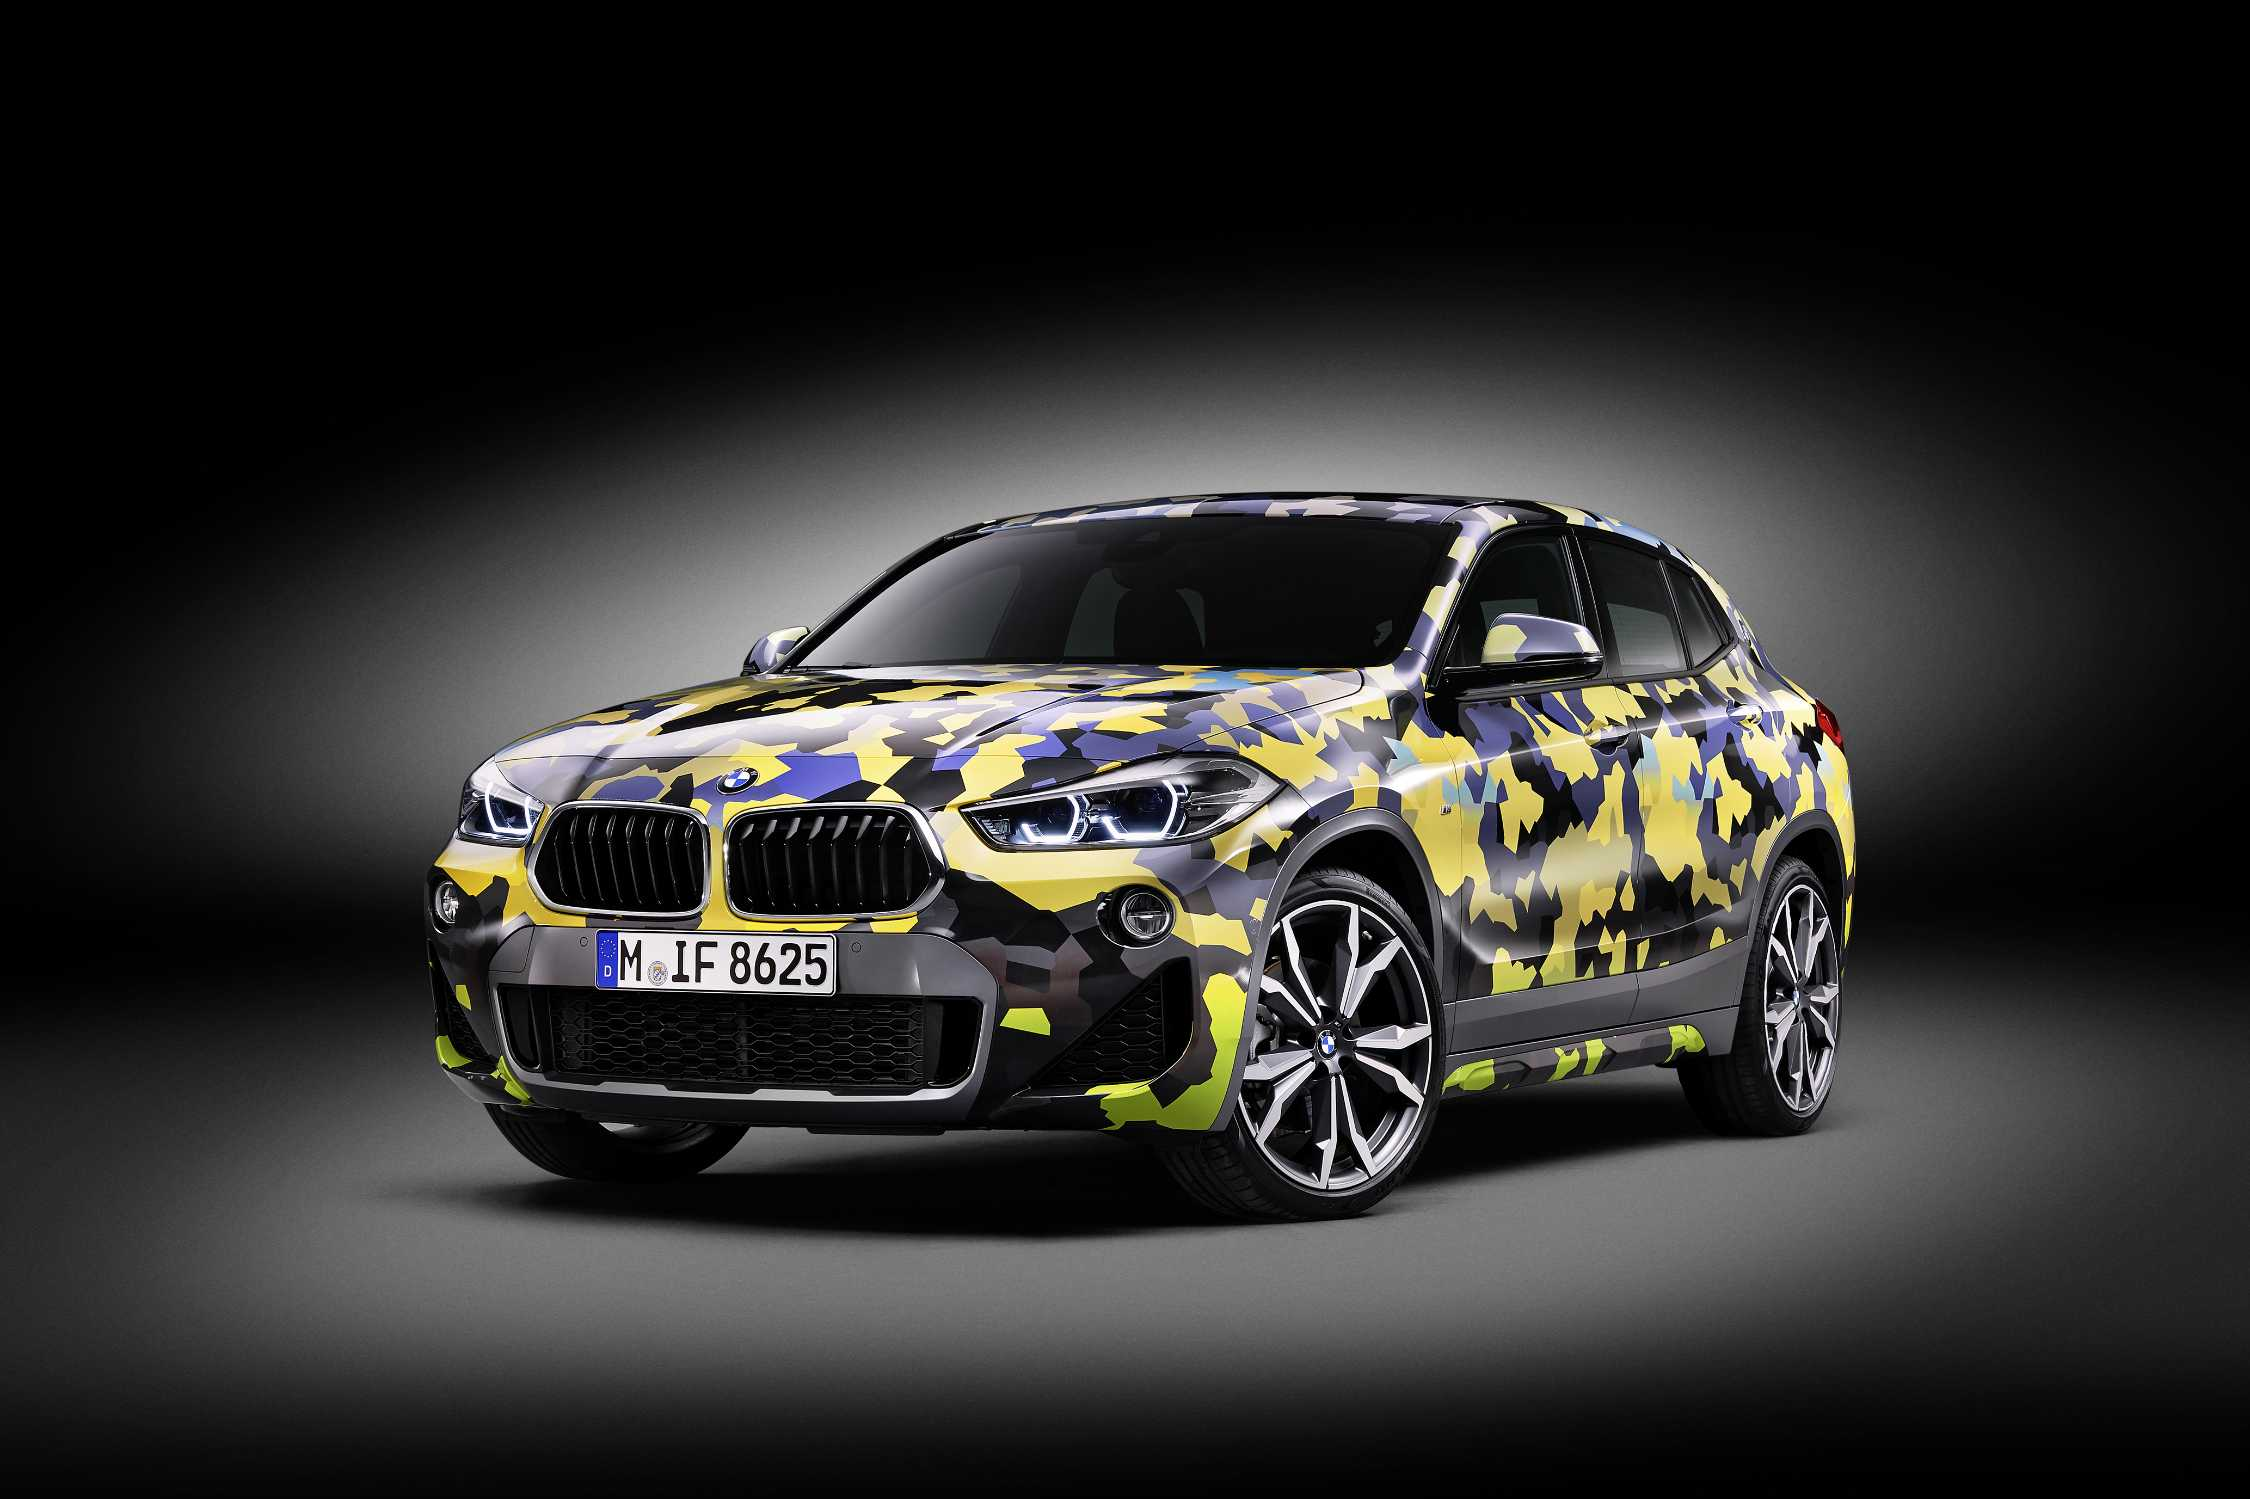 P90297902-the-new-bmw-x2-with-exclusive-